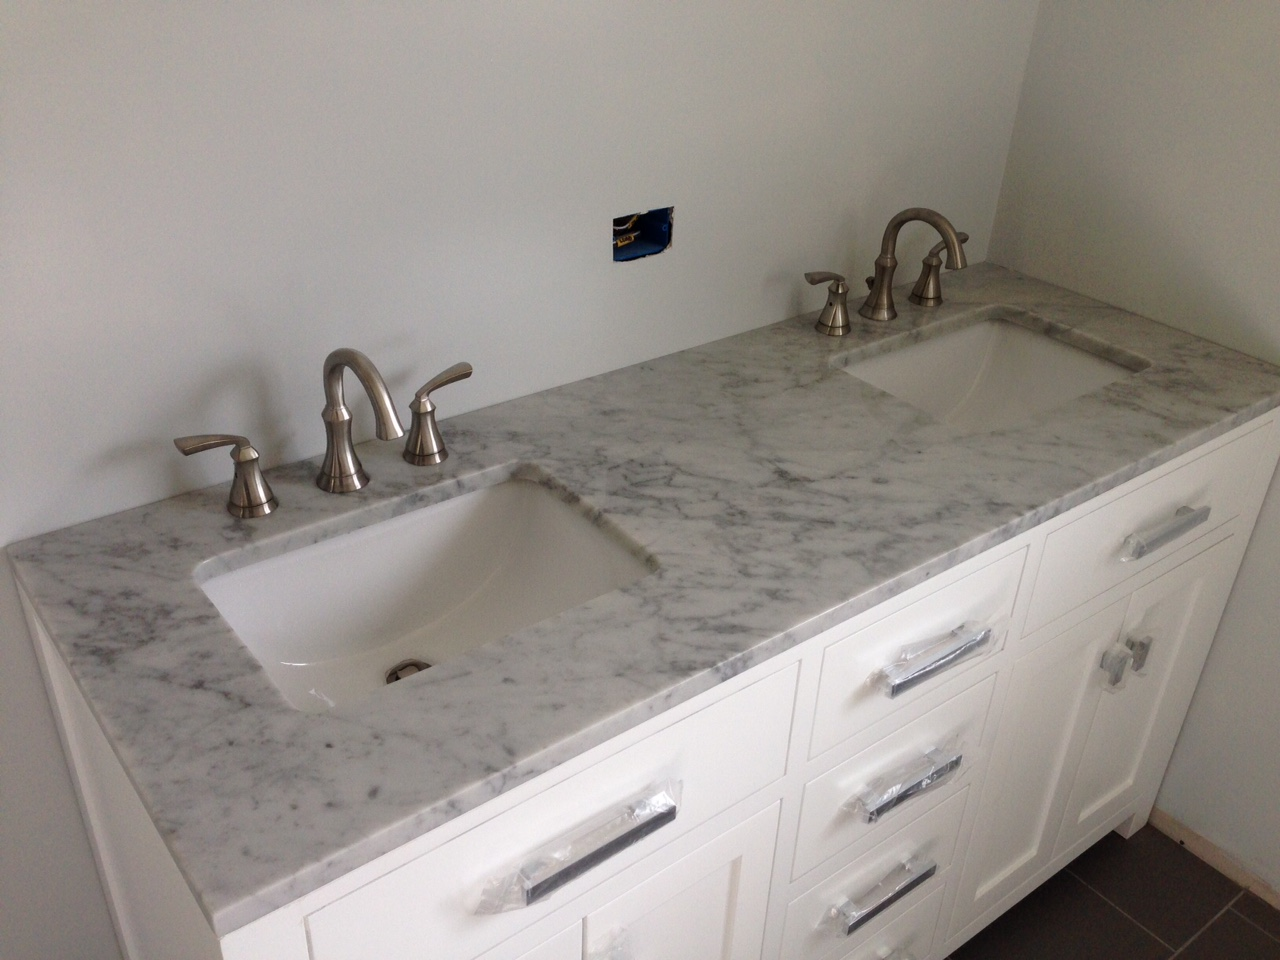 Finished bathroom dual vanity/lav with all new drains, vents supply lines and faucets.